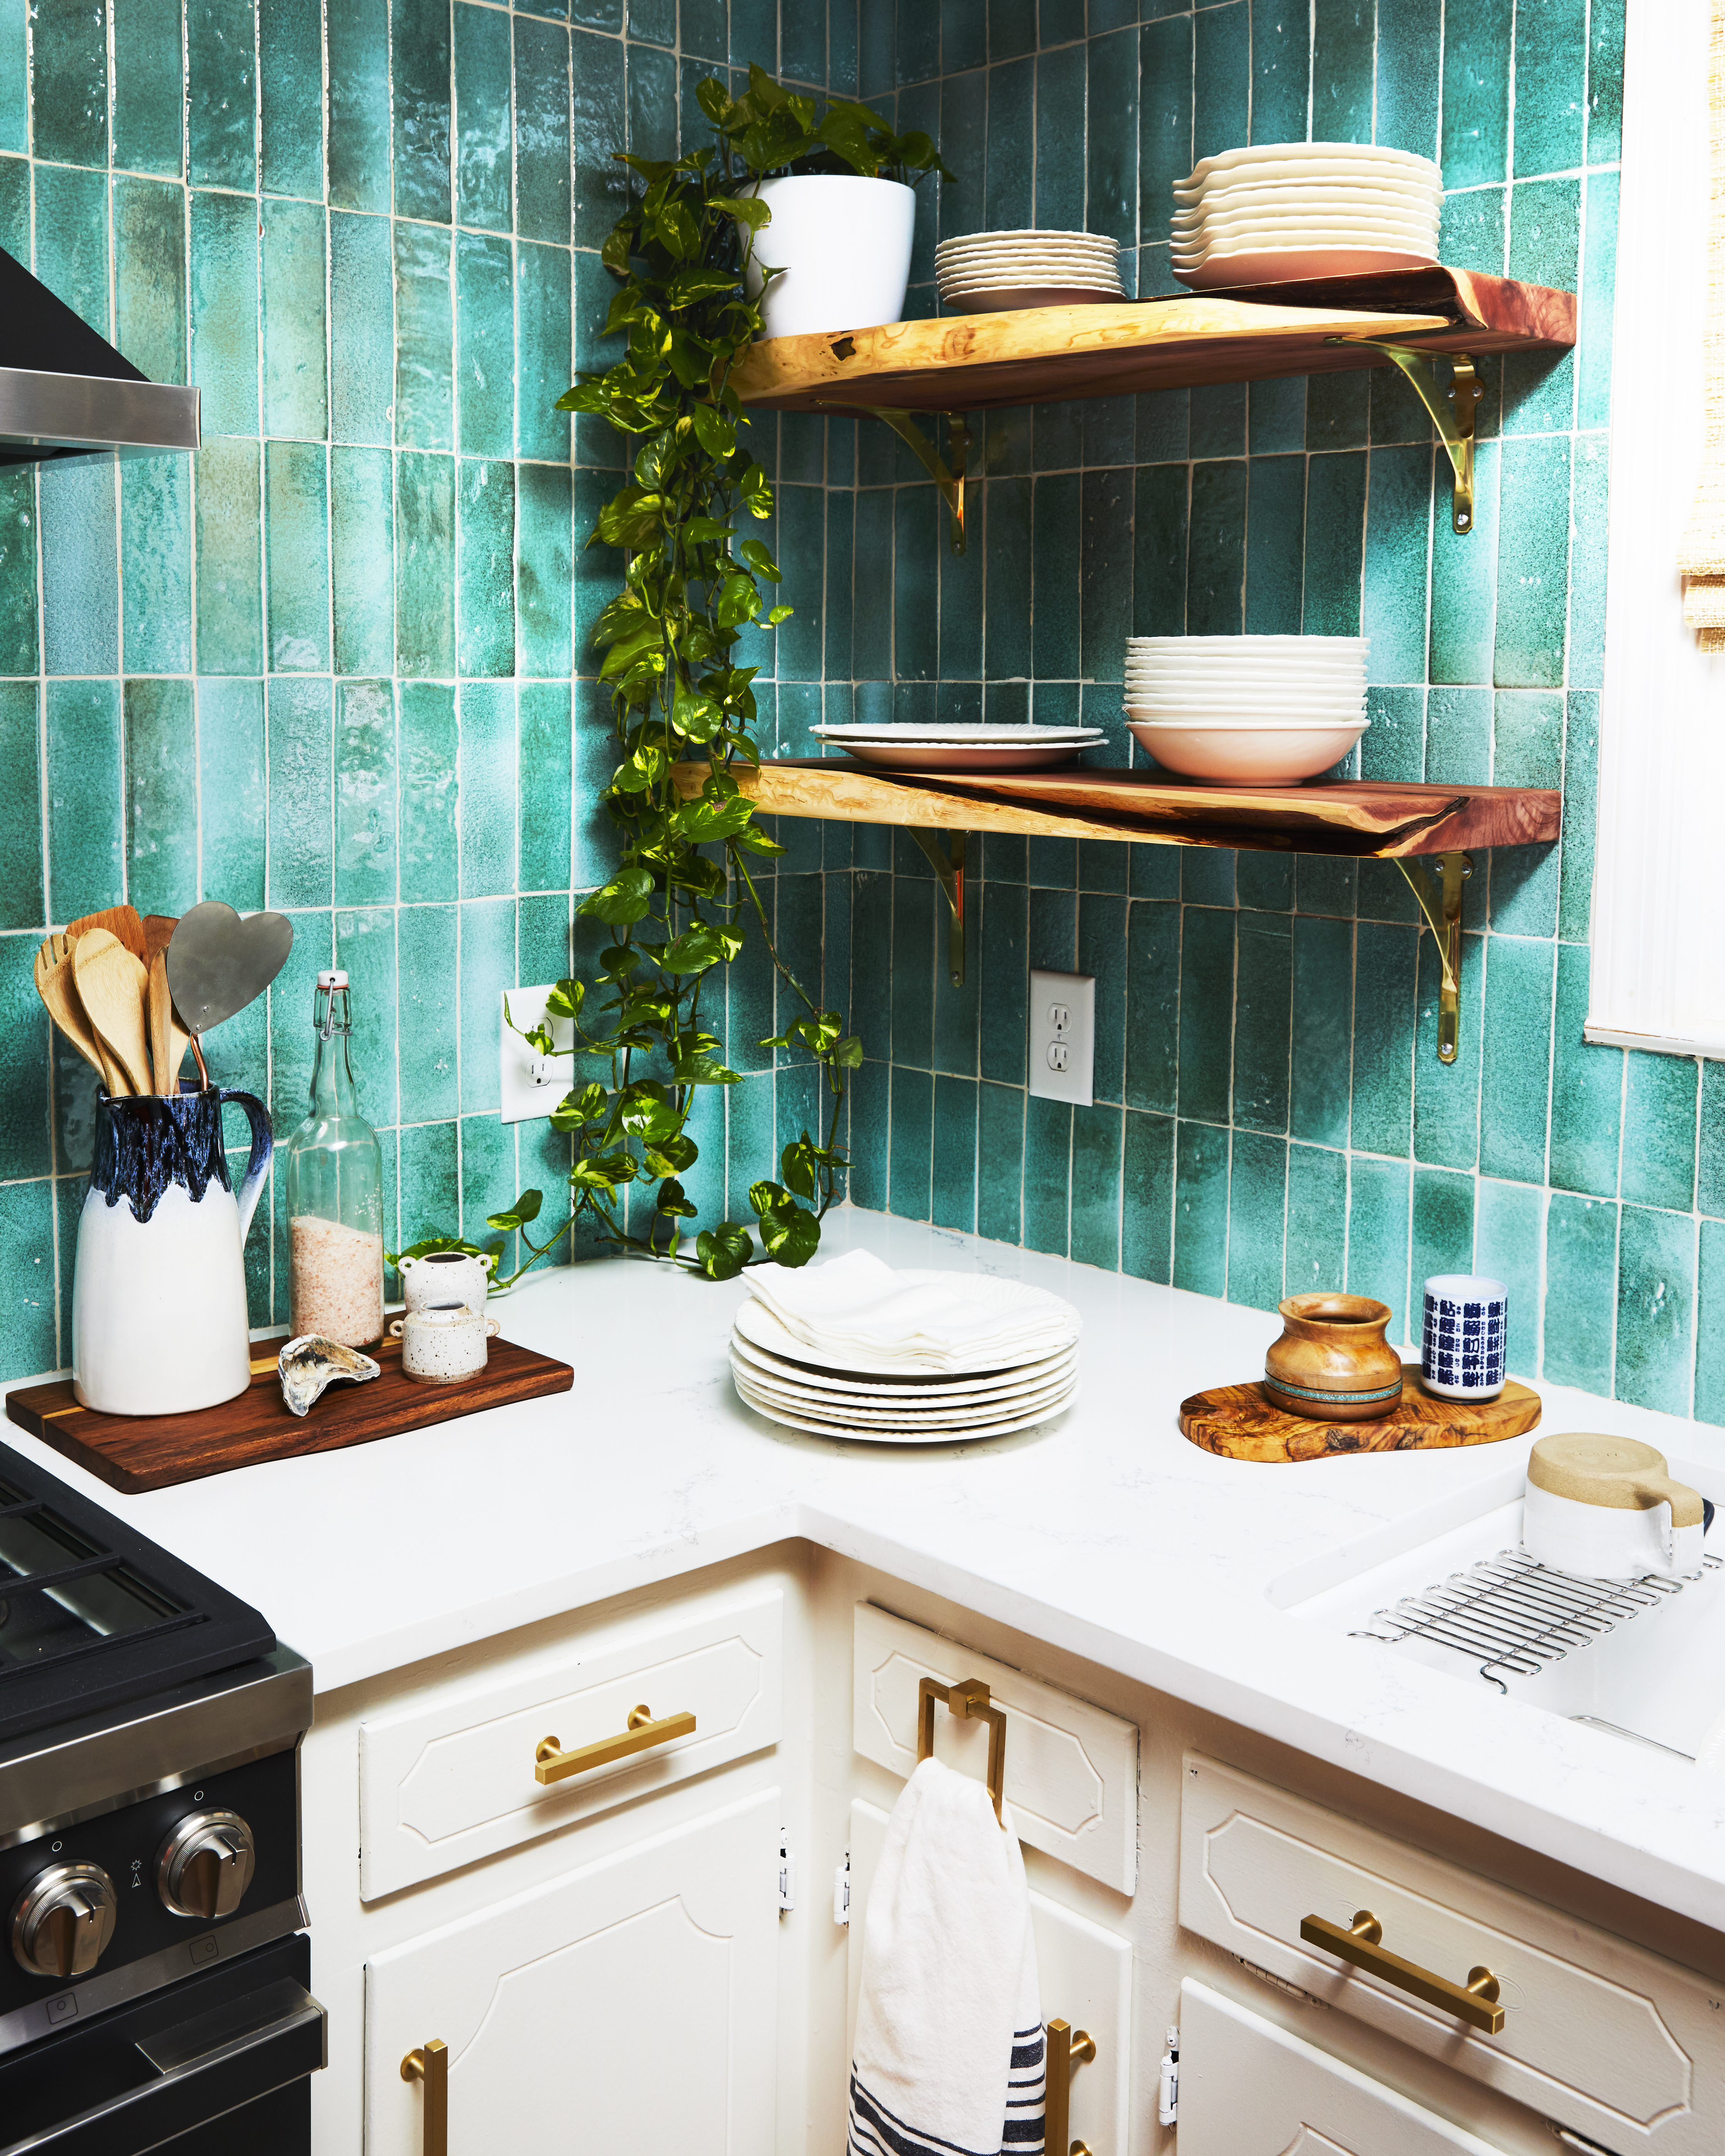 Southern Charm S Chelsea Meissner Boho Home Tour Apartment Therapy